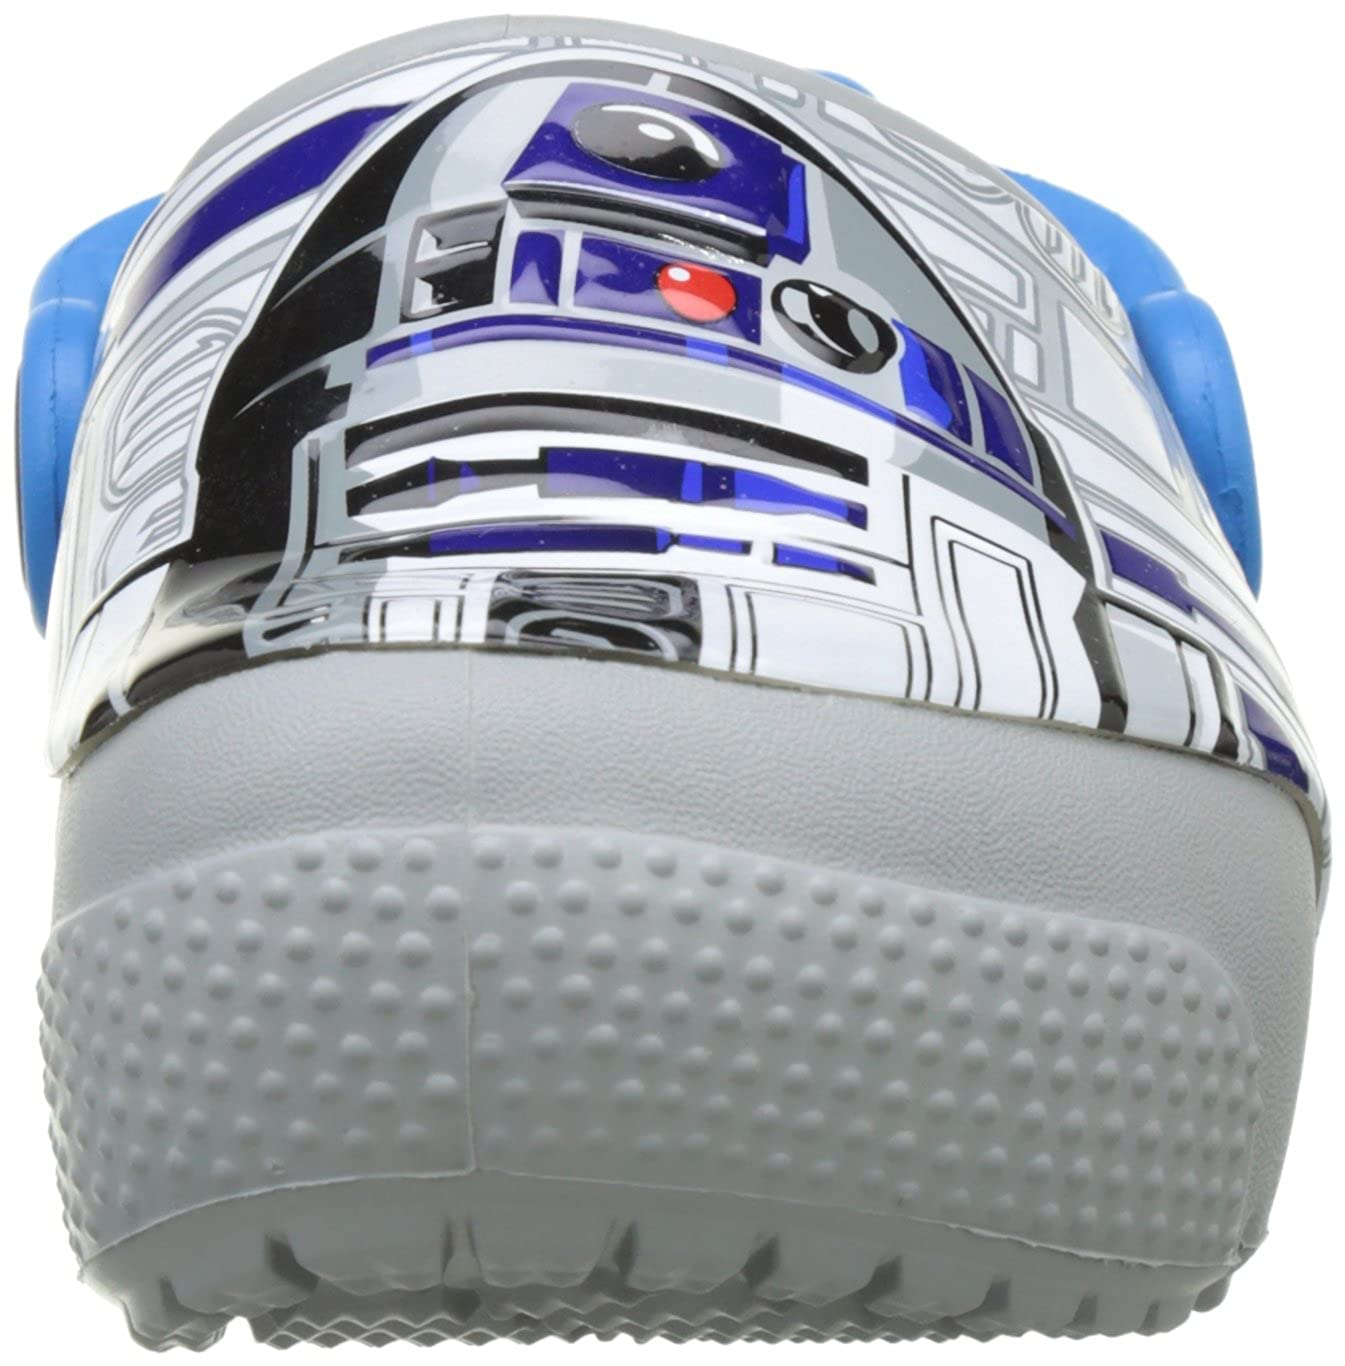 Crocs Kids Fun Lab Light-Up R2D2 Clog crocs Boys/' Crocsfunlab R2D2 Clog Ocean//Light Grey 4 M US Toddler 204135